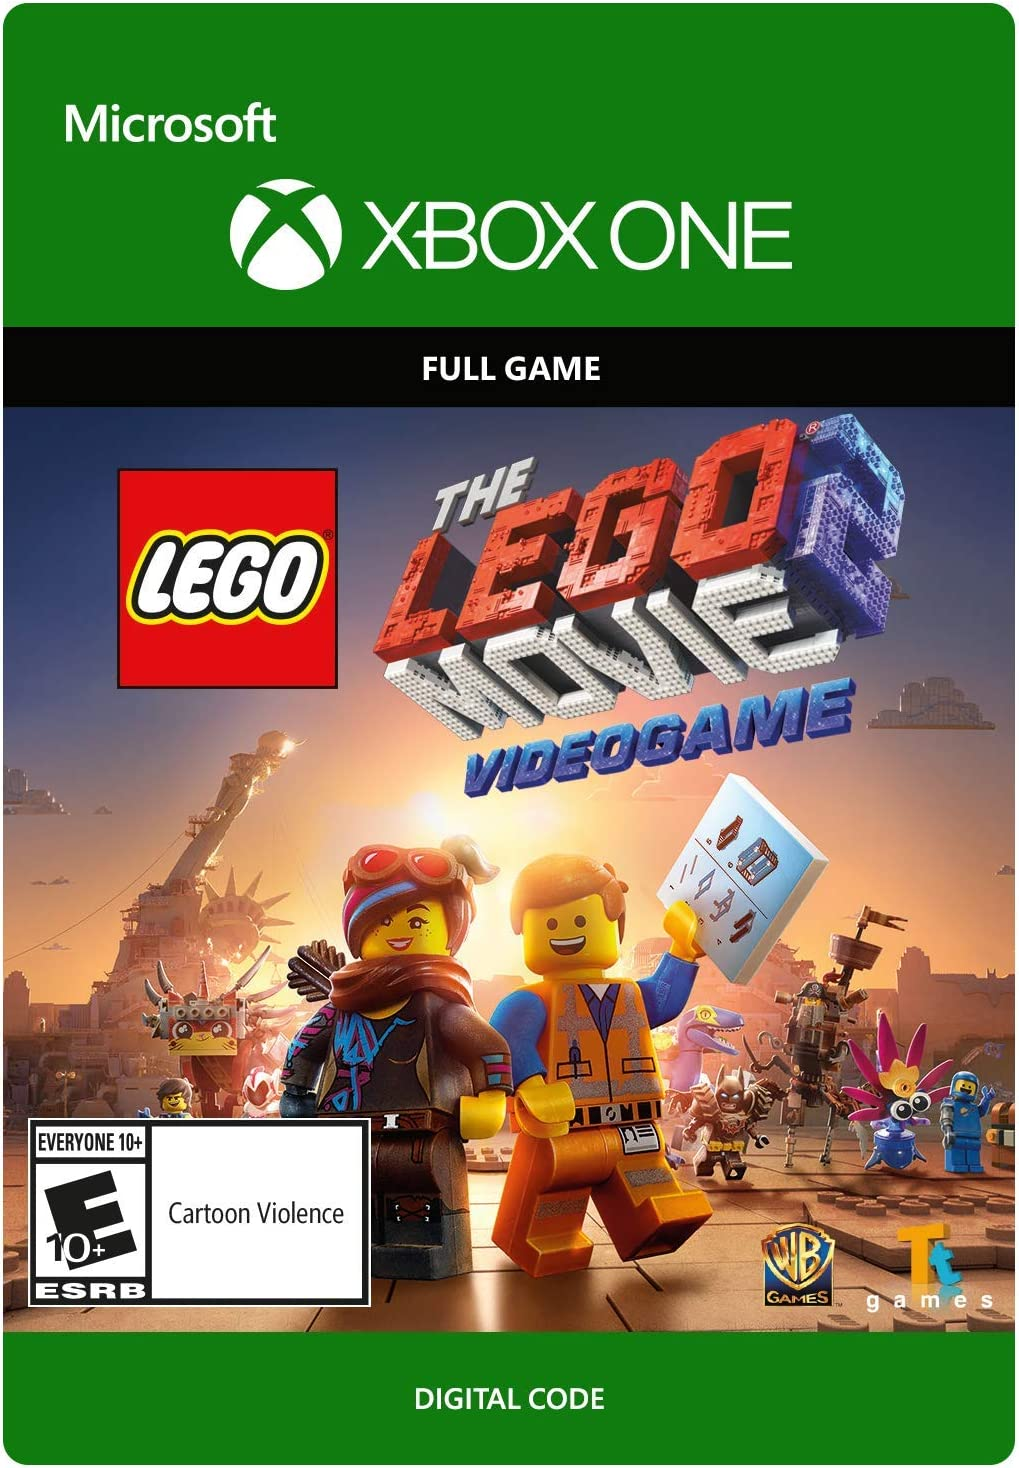 Amazoncom Lego Movie 2 The Video Game Xbox One Digital Code